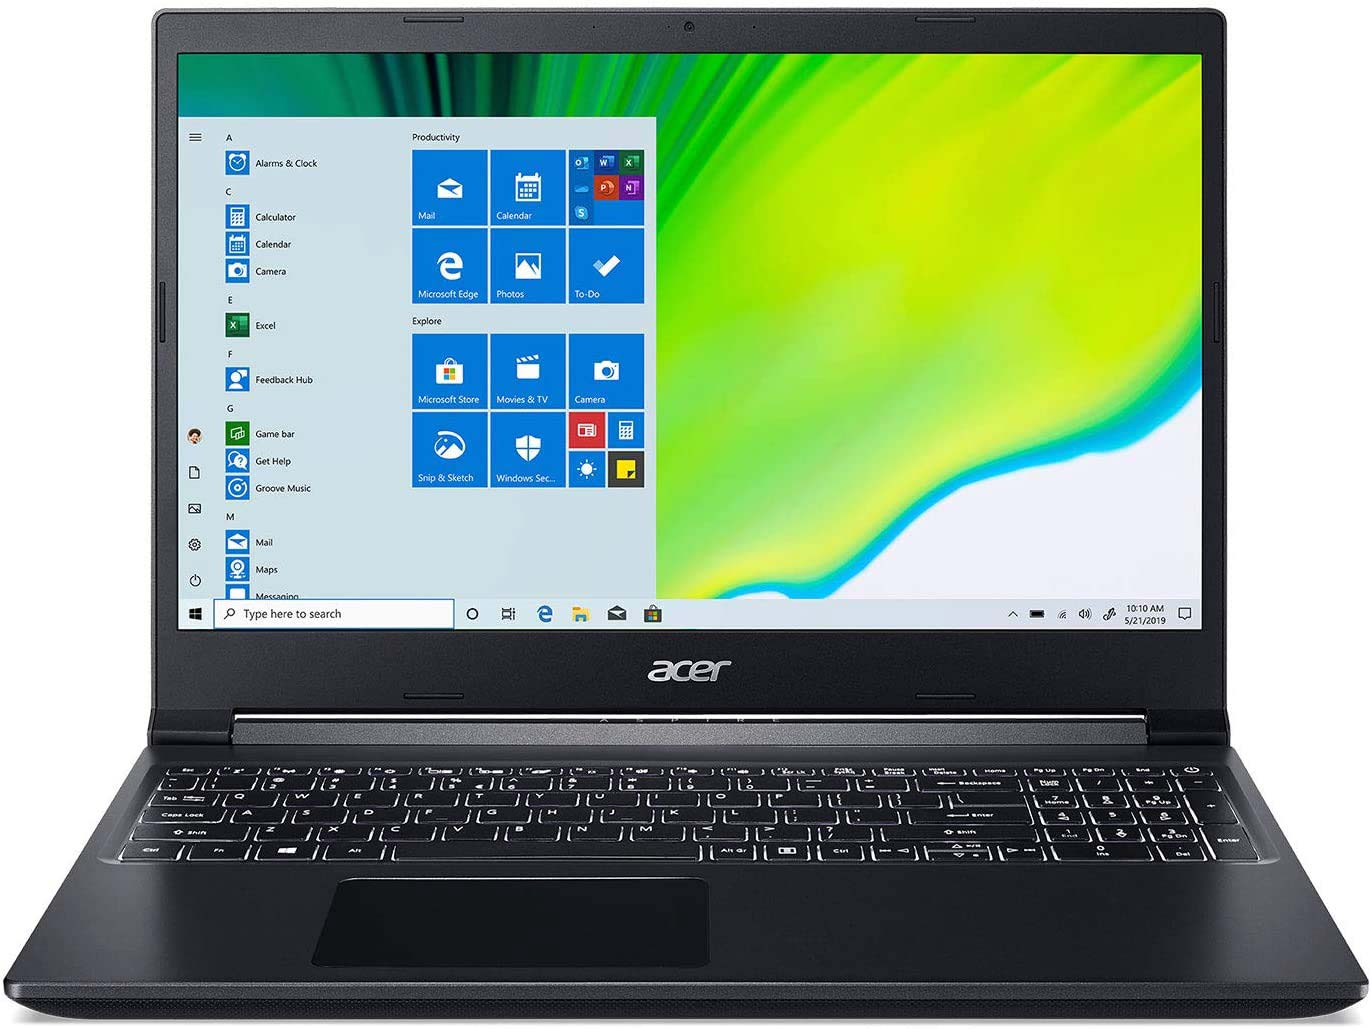 Acer Aspire 7 - great laptop under 00